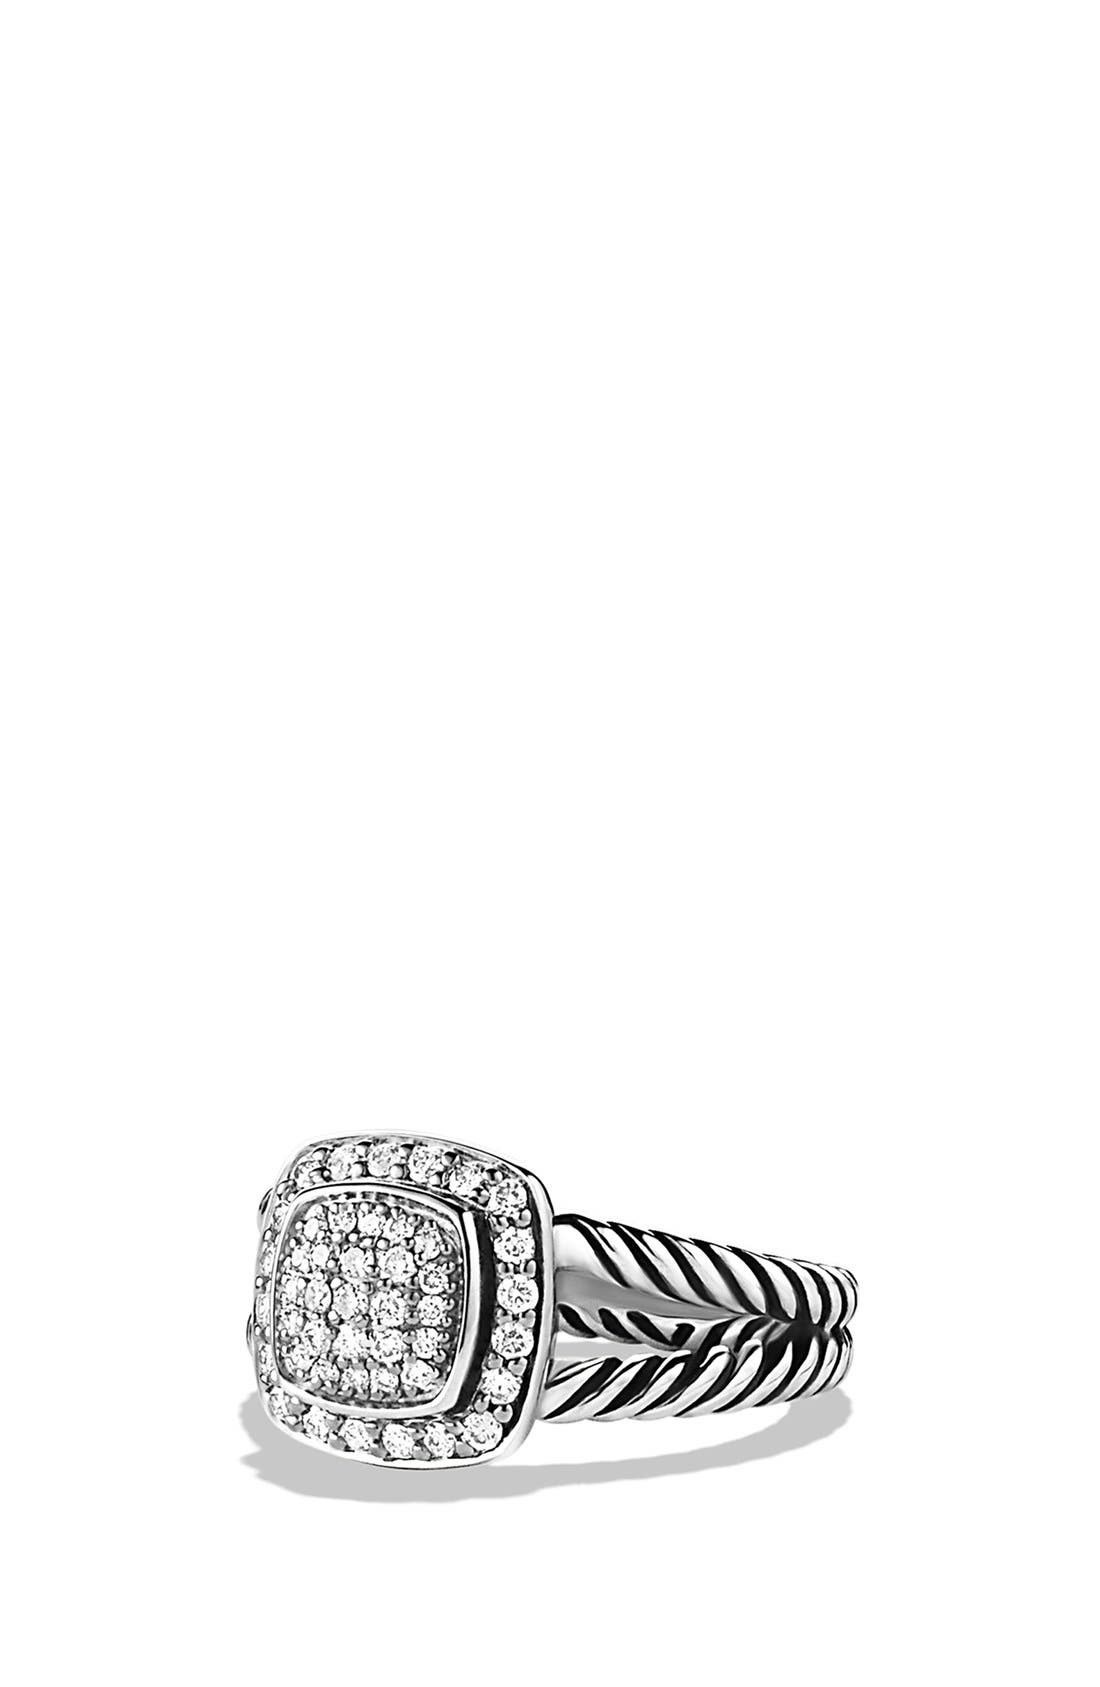 'Albion' Petite Ring with Diamonds,                         Main,                         color, DIAMOND